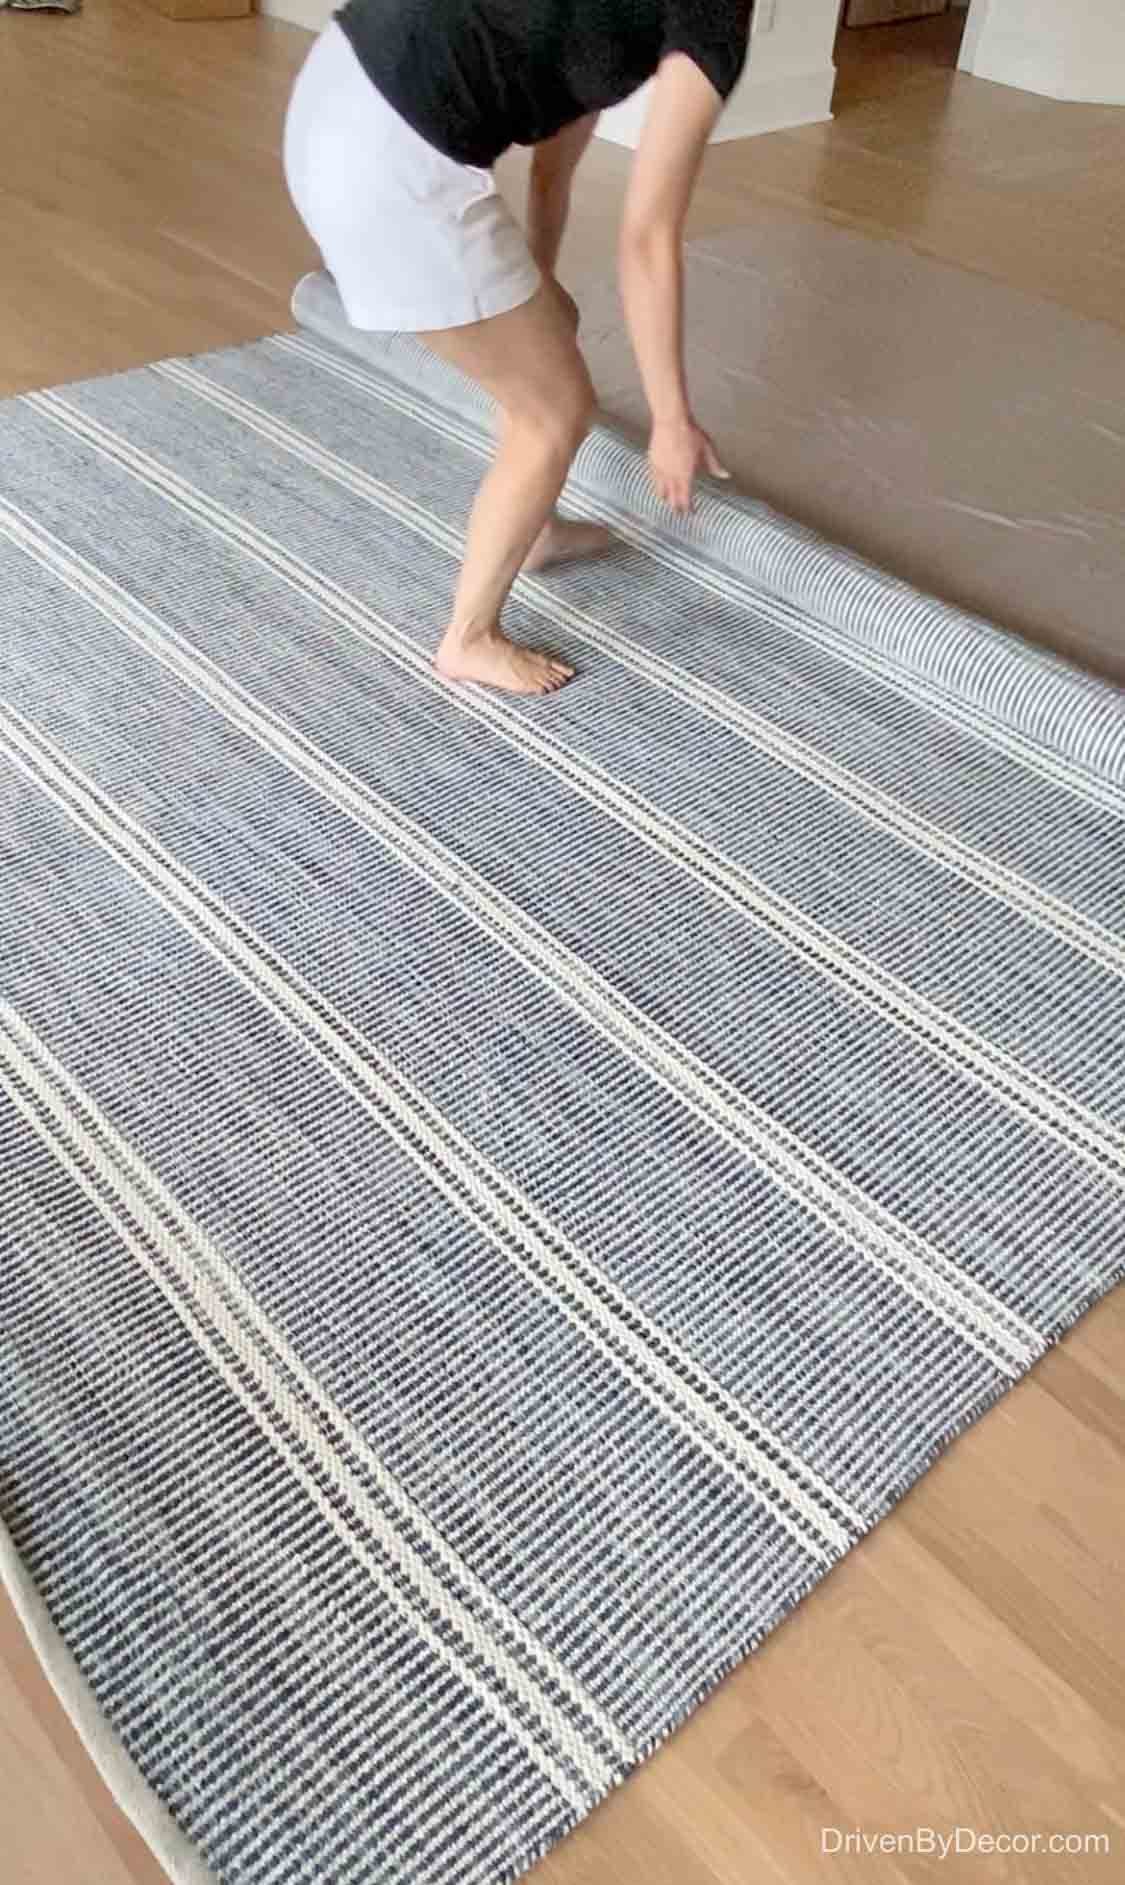 Rolling out our new blue and white family room rug!